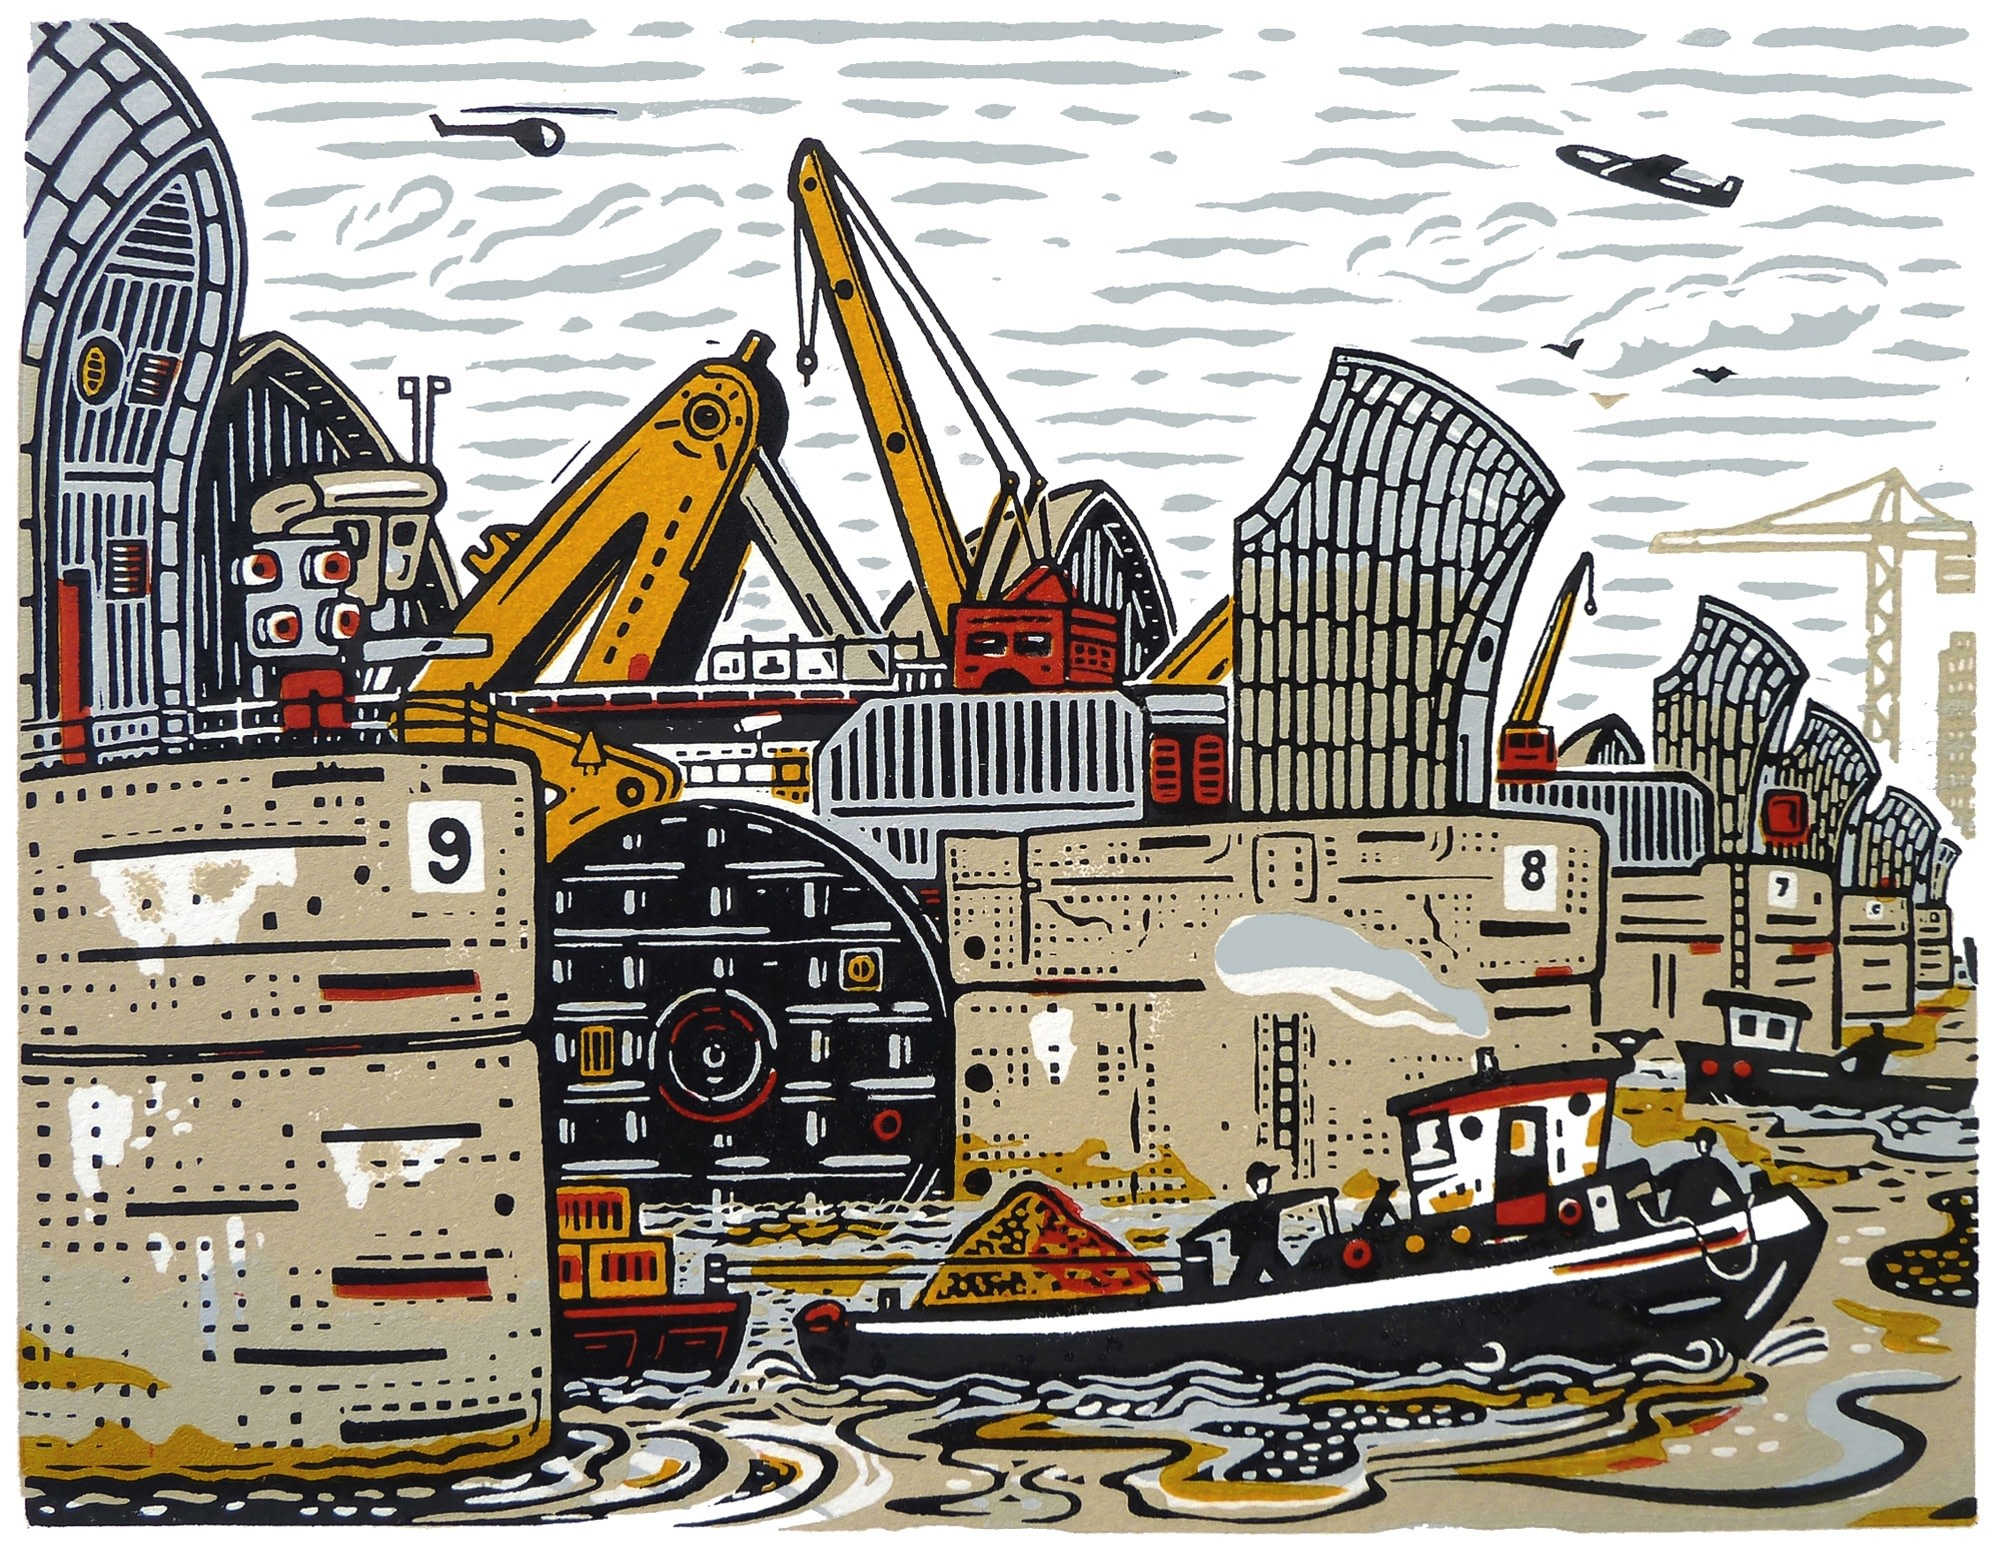 """<span class=""""link fancybox-details-link""""><a href=""""/exhibitions/17/works/image_standalone626/"""">View Detail Page</a></span><p><strong>Mick Armson</strong></p><p>Through the Barrier</p><p>linocut, ed of 60</p><p>47 x 41cm</p><p>£295 framed</p><p>£195 unframed</p>"""